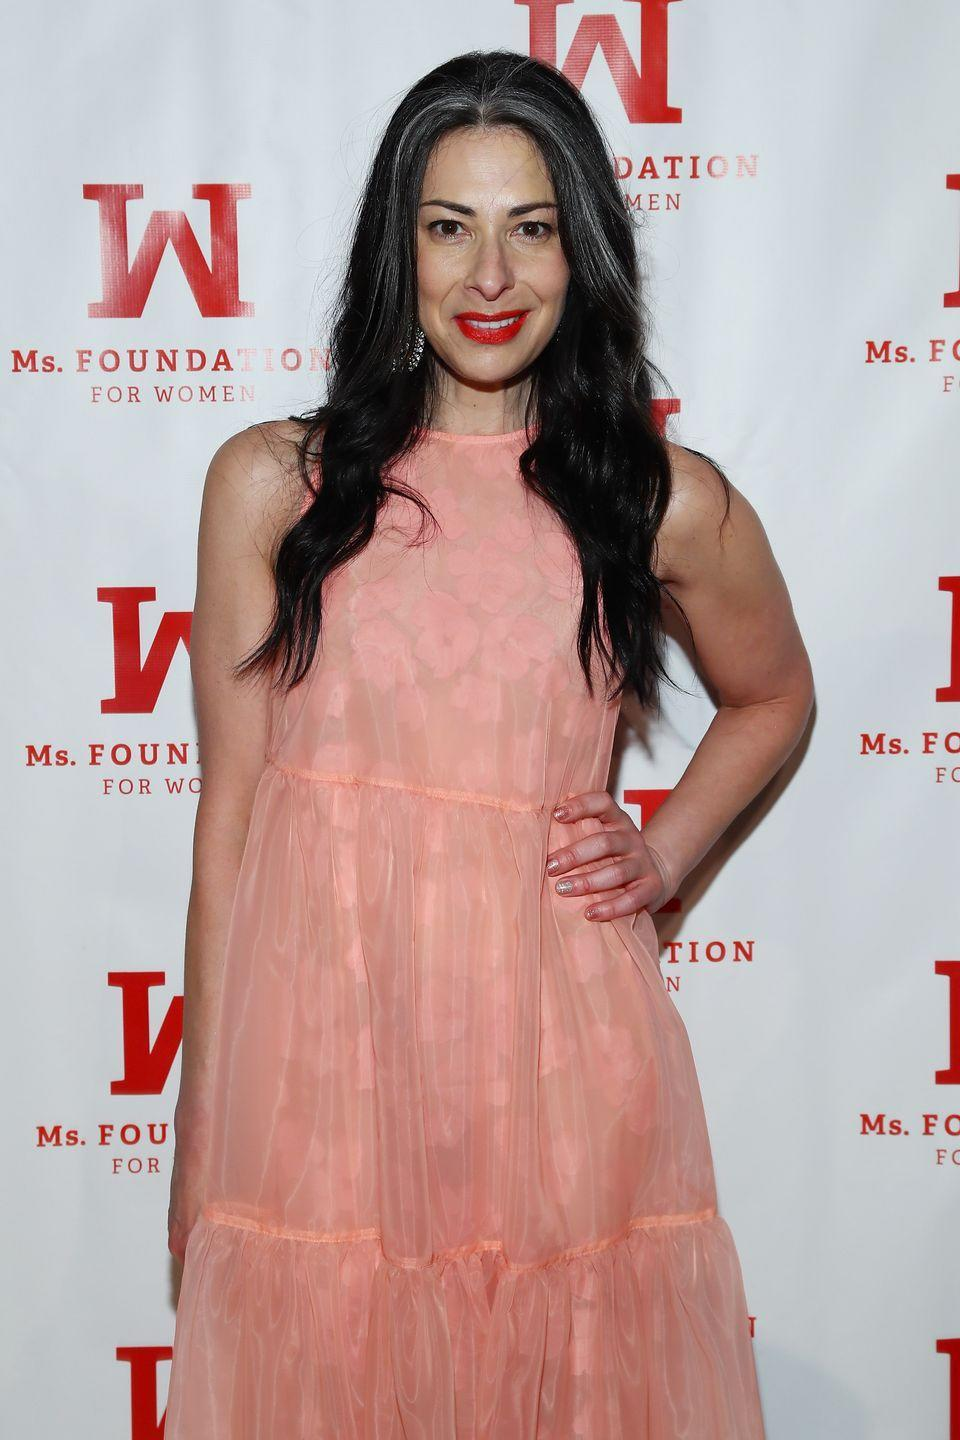 <p>Own those gray strands! Stacy London let her front gray strands grow in while keeping the rest of her hair dark for a chic, contrasted look that is ageless.</p>